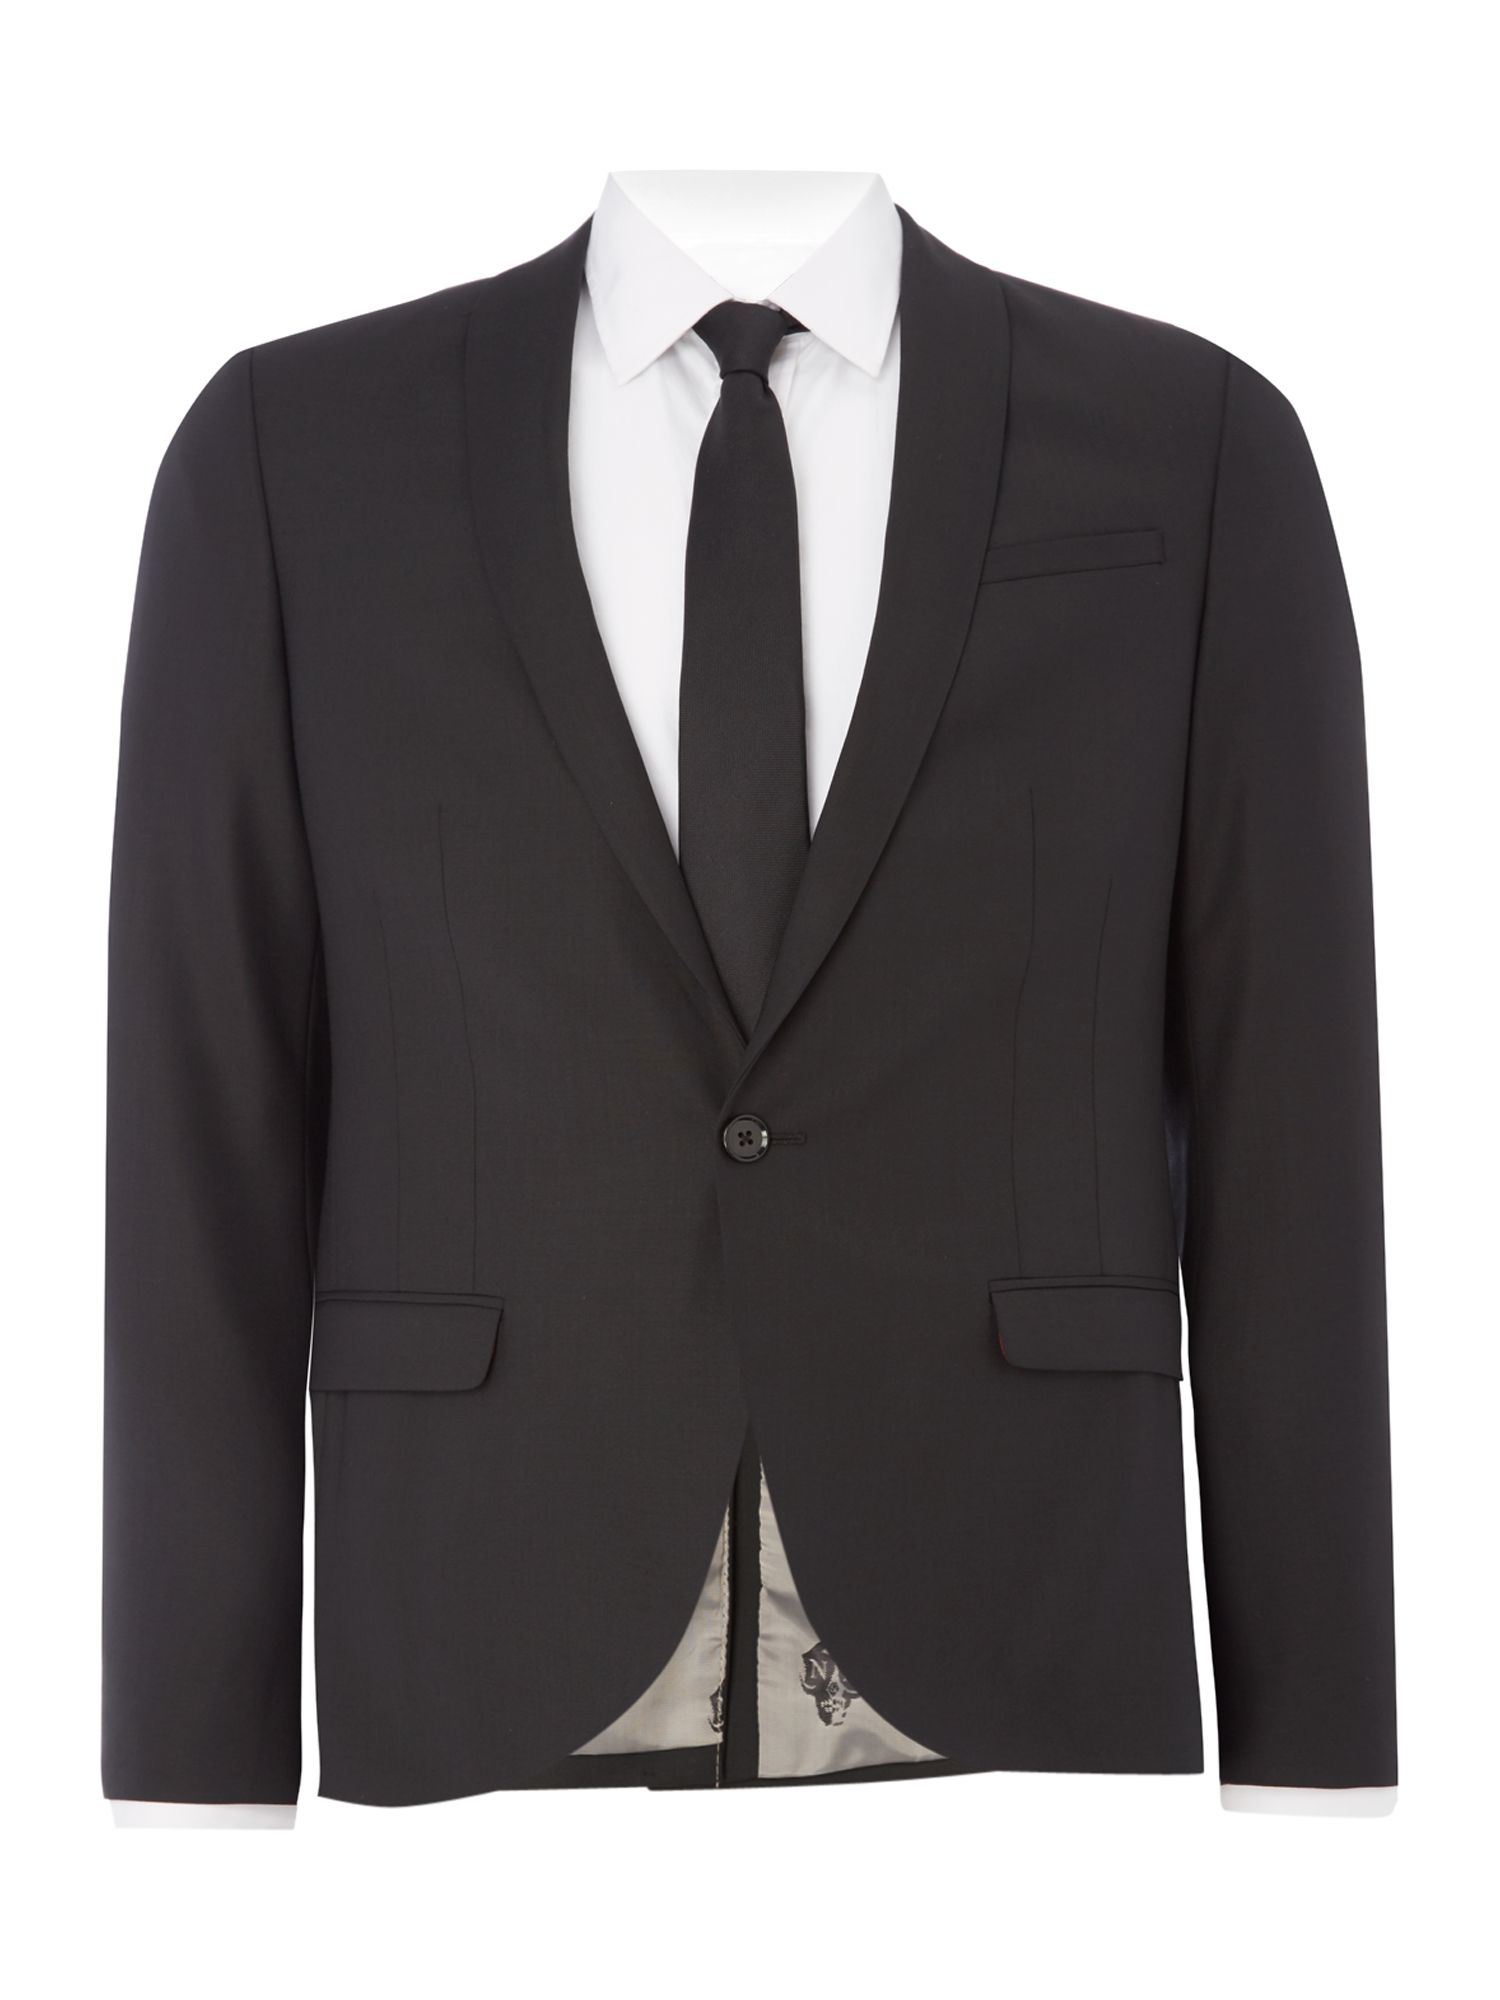 Noose and Monkey Men's Noose and Monkey Skinny Fit Shawl Collar Jacket, Black